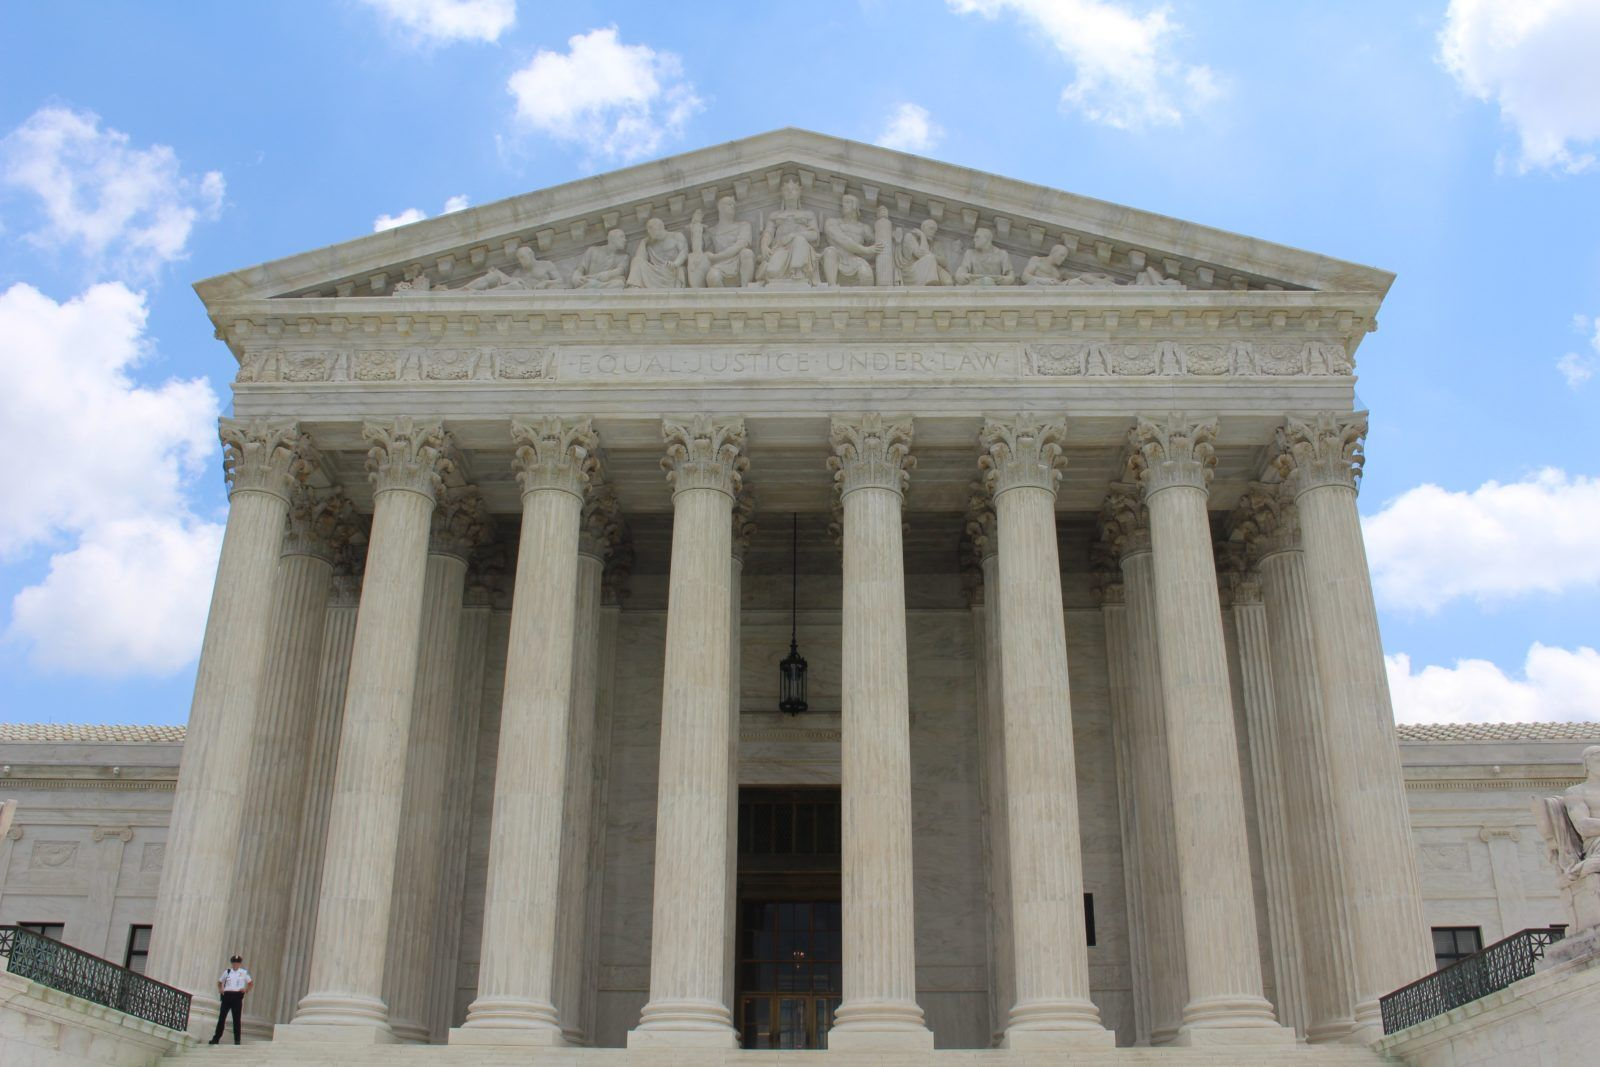 Supreme Court: Domestic Battery Defendants Deserve Right to Jury Trial